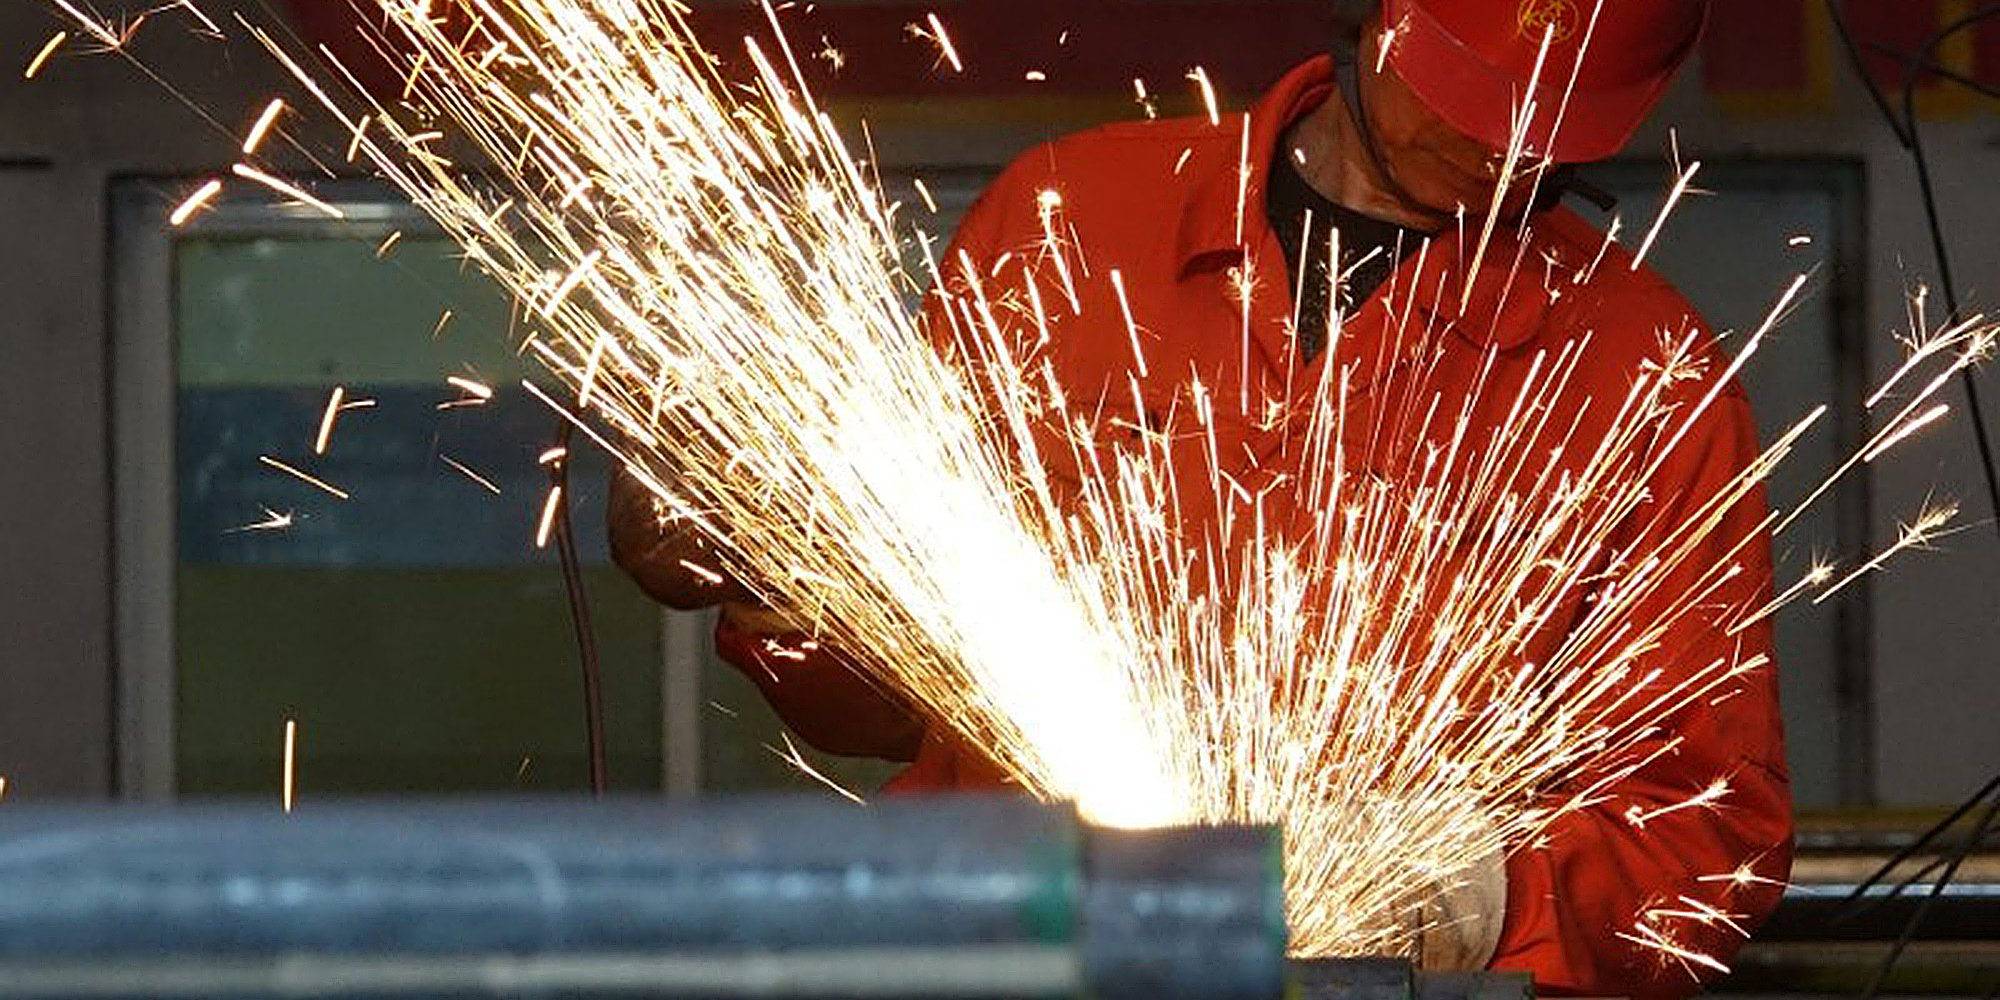 China's manufacturing activity expanded in July at the fastest pace in almost a decade, according to a private survey released on Monday, though employment continued to drop in the wake of the coronavirus crisis. The Caixin/Markit Purchasing Managers' Index (PMI) came in at 52.8 for July, compared to 51.2 in June. A reading above 50 […]